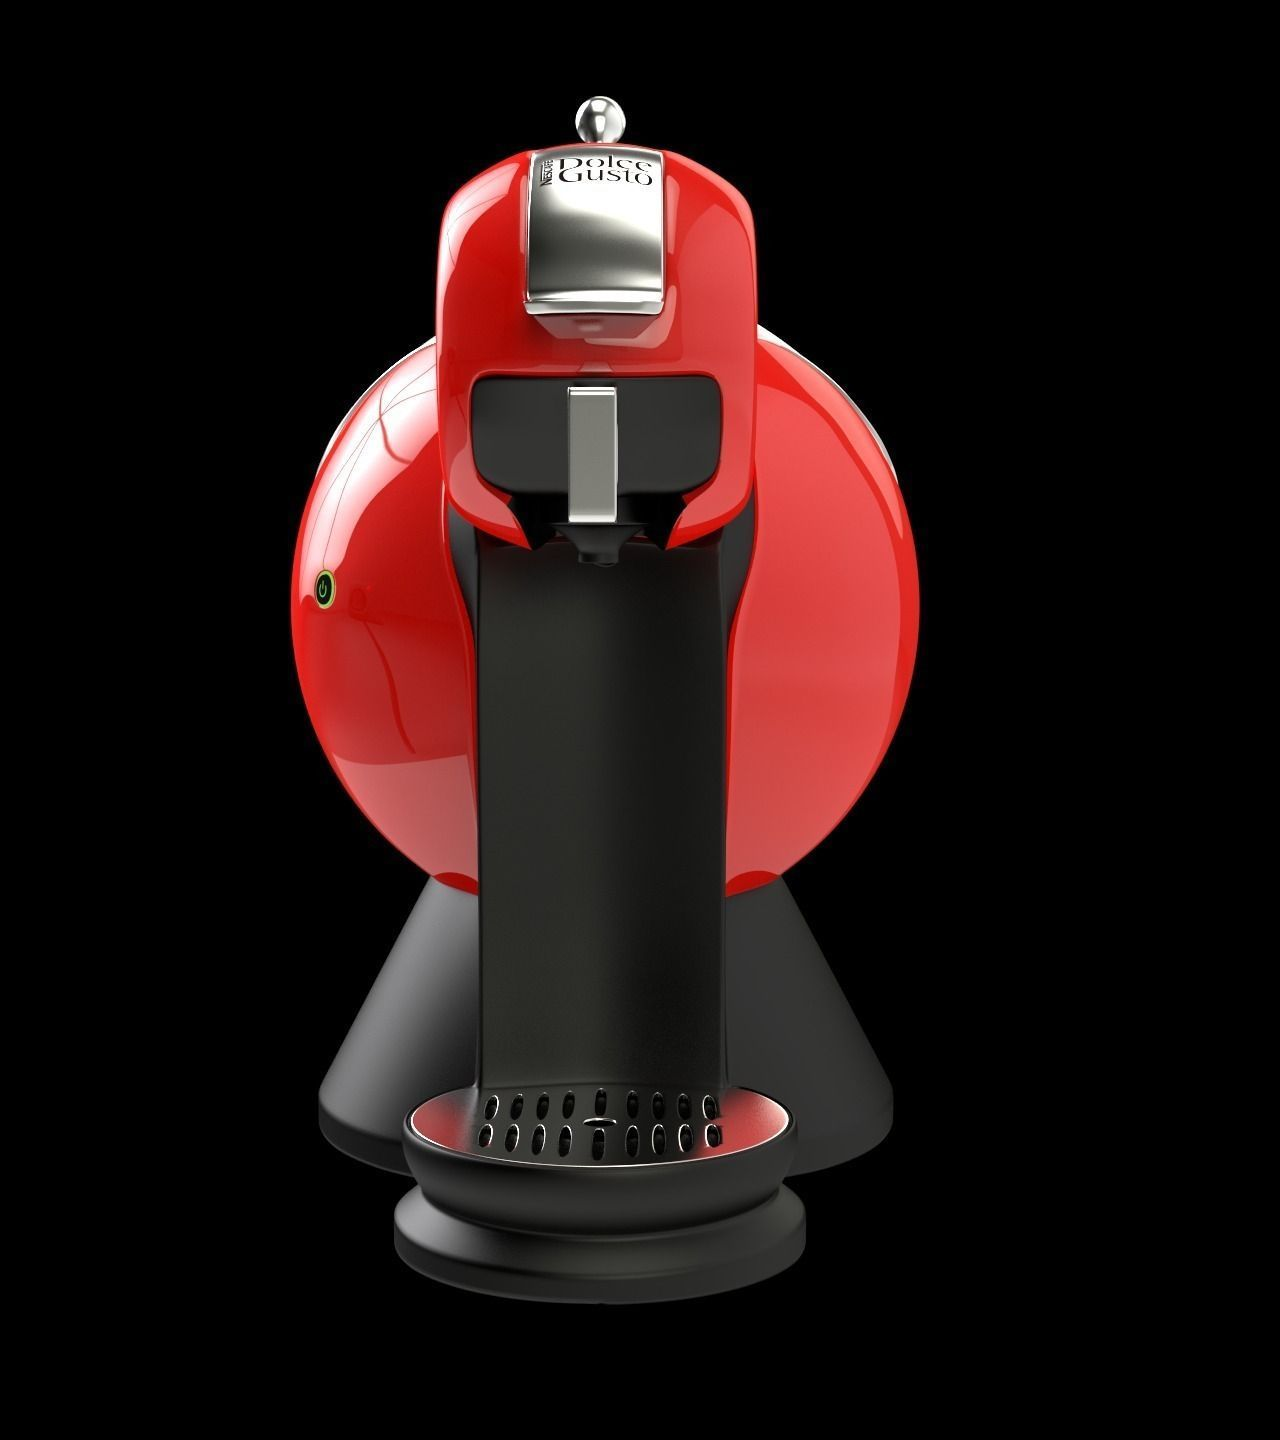 Dolce Gusto Coffee Maker Free 3d Model Obj 3ds Fbx Dae